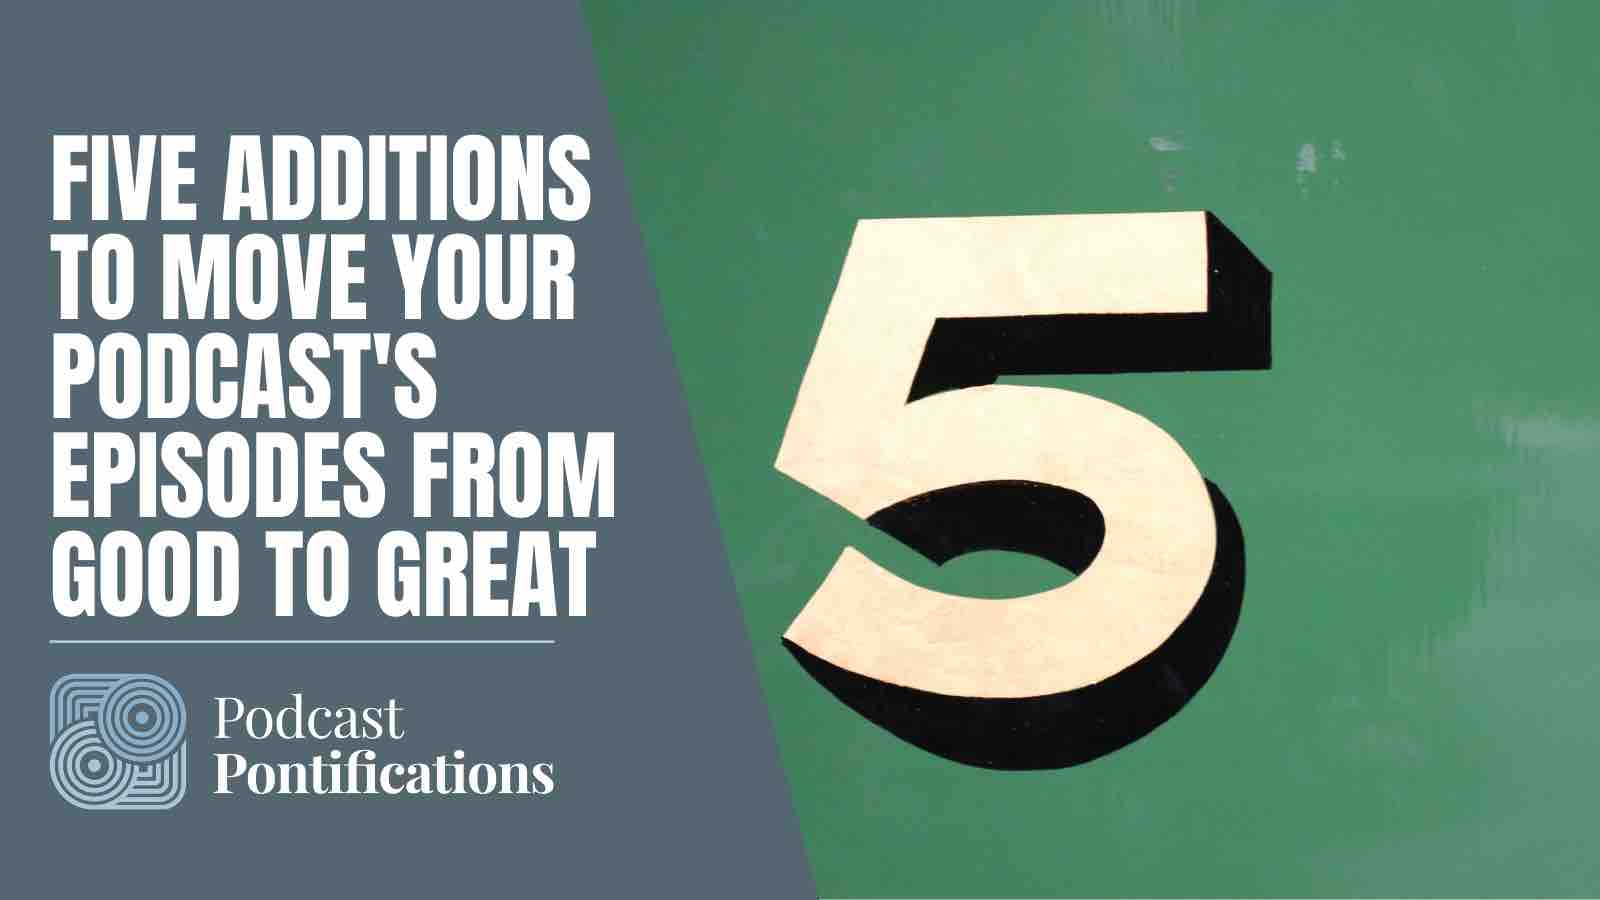 Five Additions To Move Your Podcast's Episodes From Good To Great